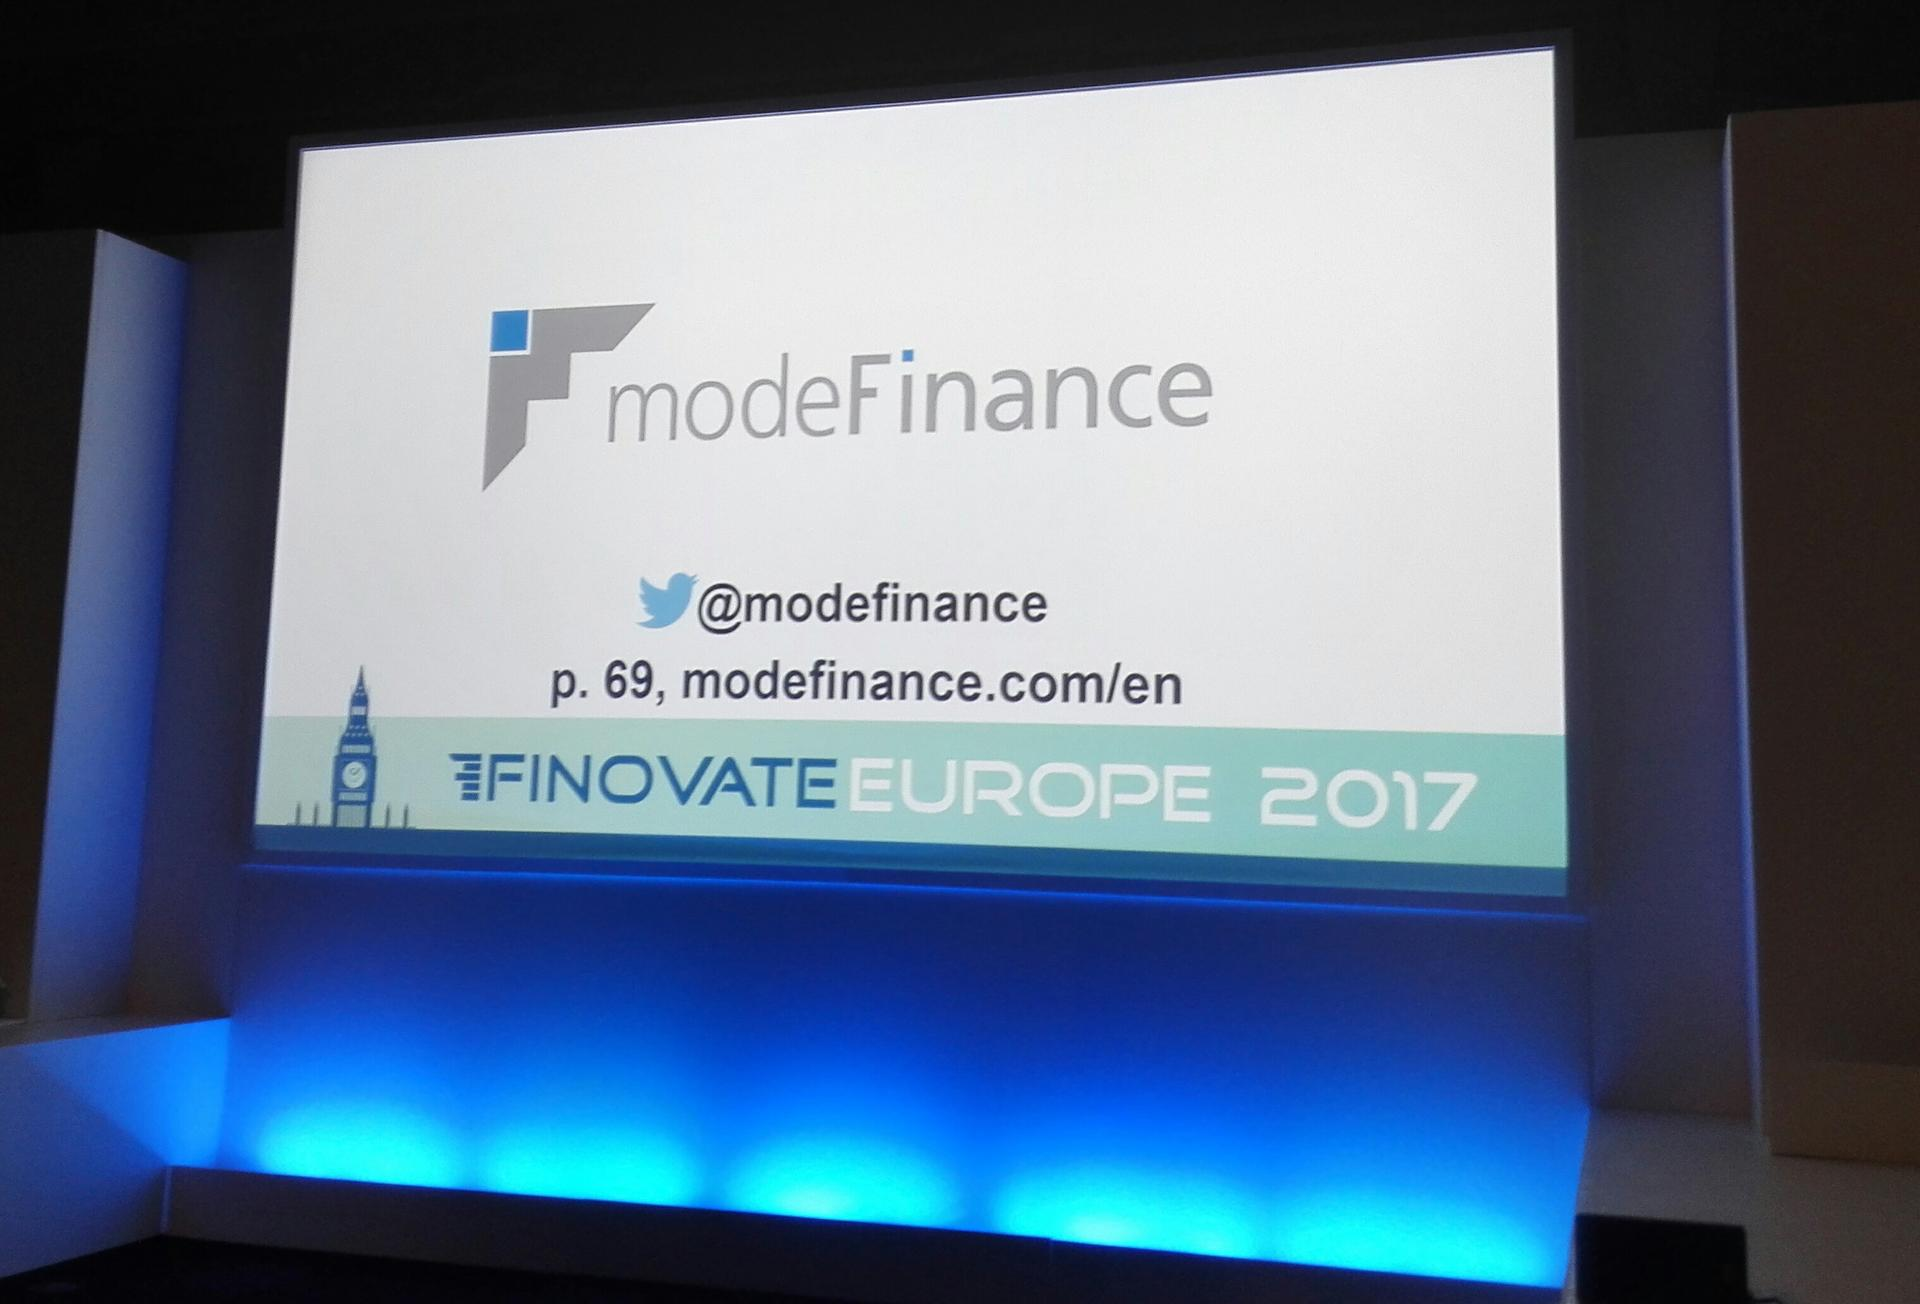 Finovate Europe 2017 modeFinance 3